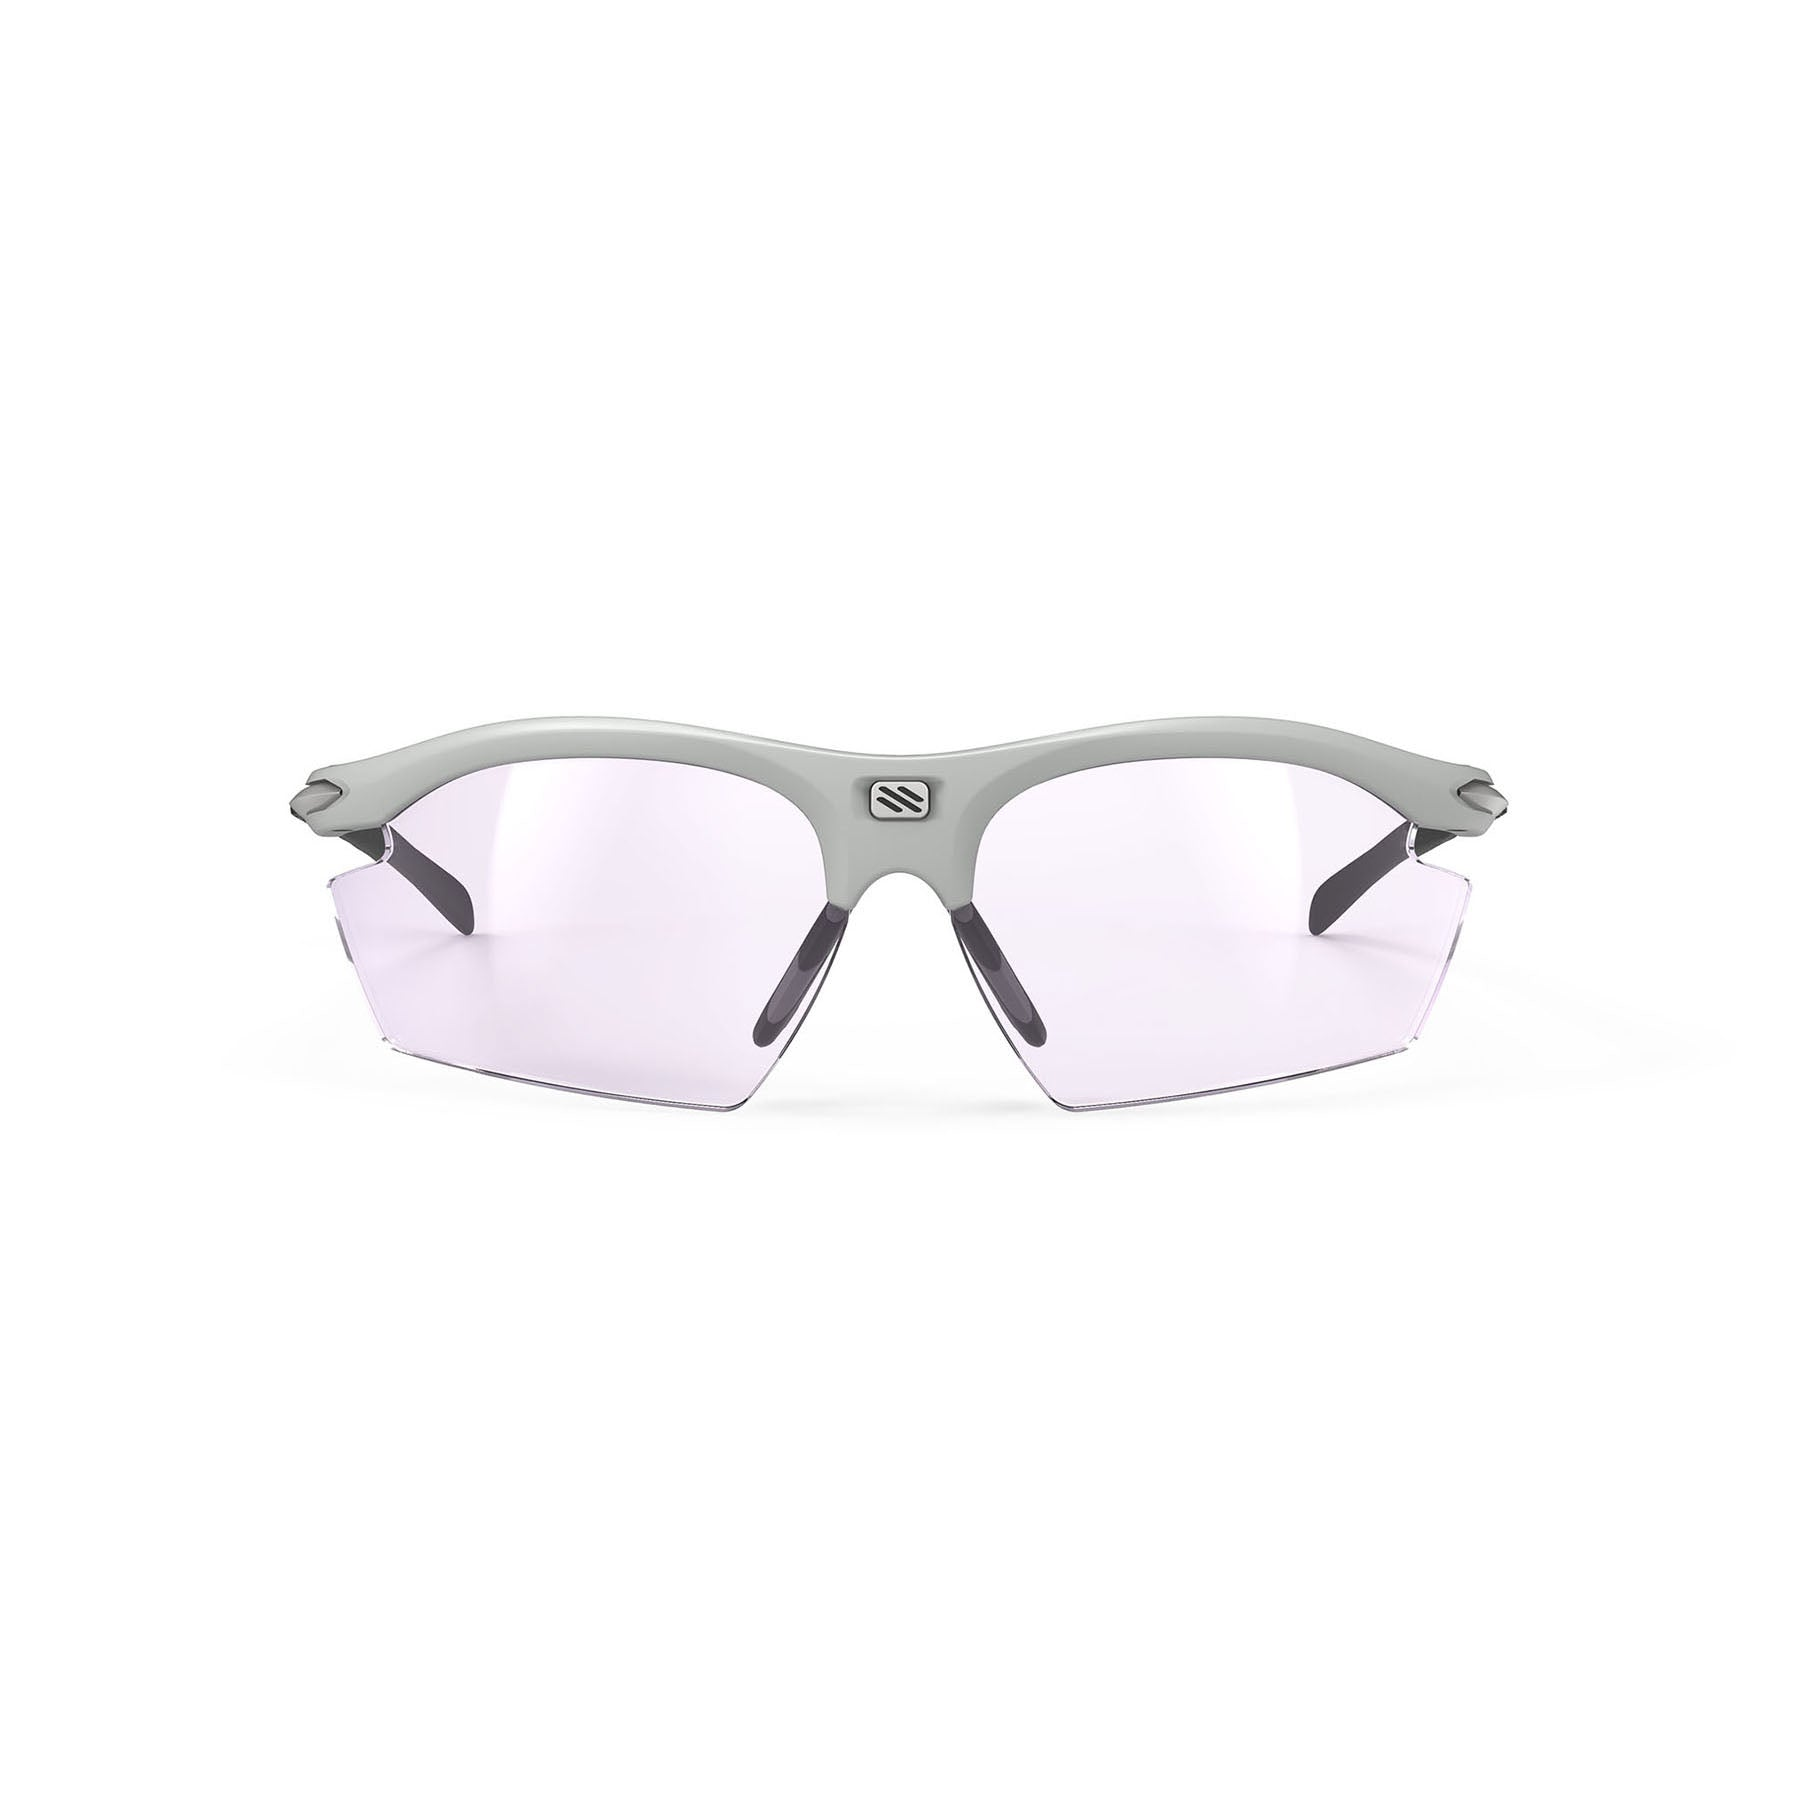 Rudy Project - Rydon Running - frame color: Light Grey - lens color: ImpactX-2 Photochromic Clear to Laser Purple - photo angle: Front View Variant Hover Image